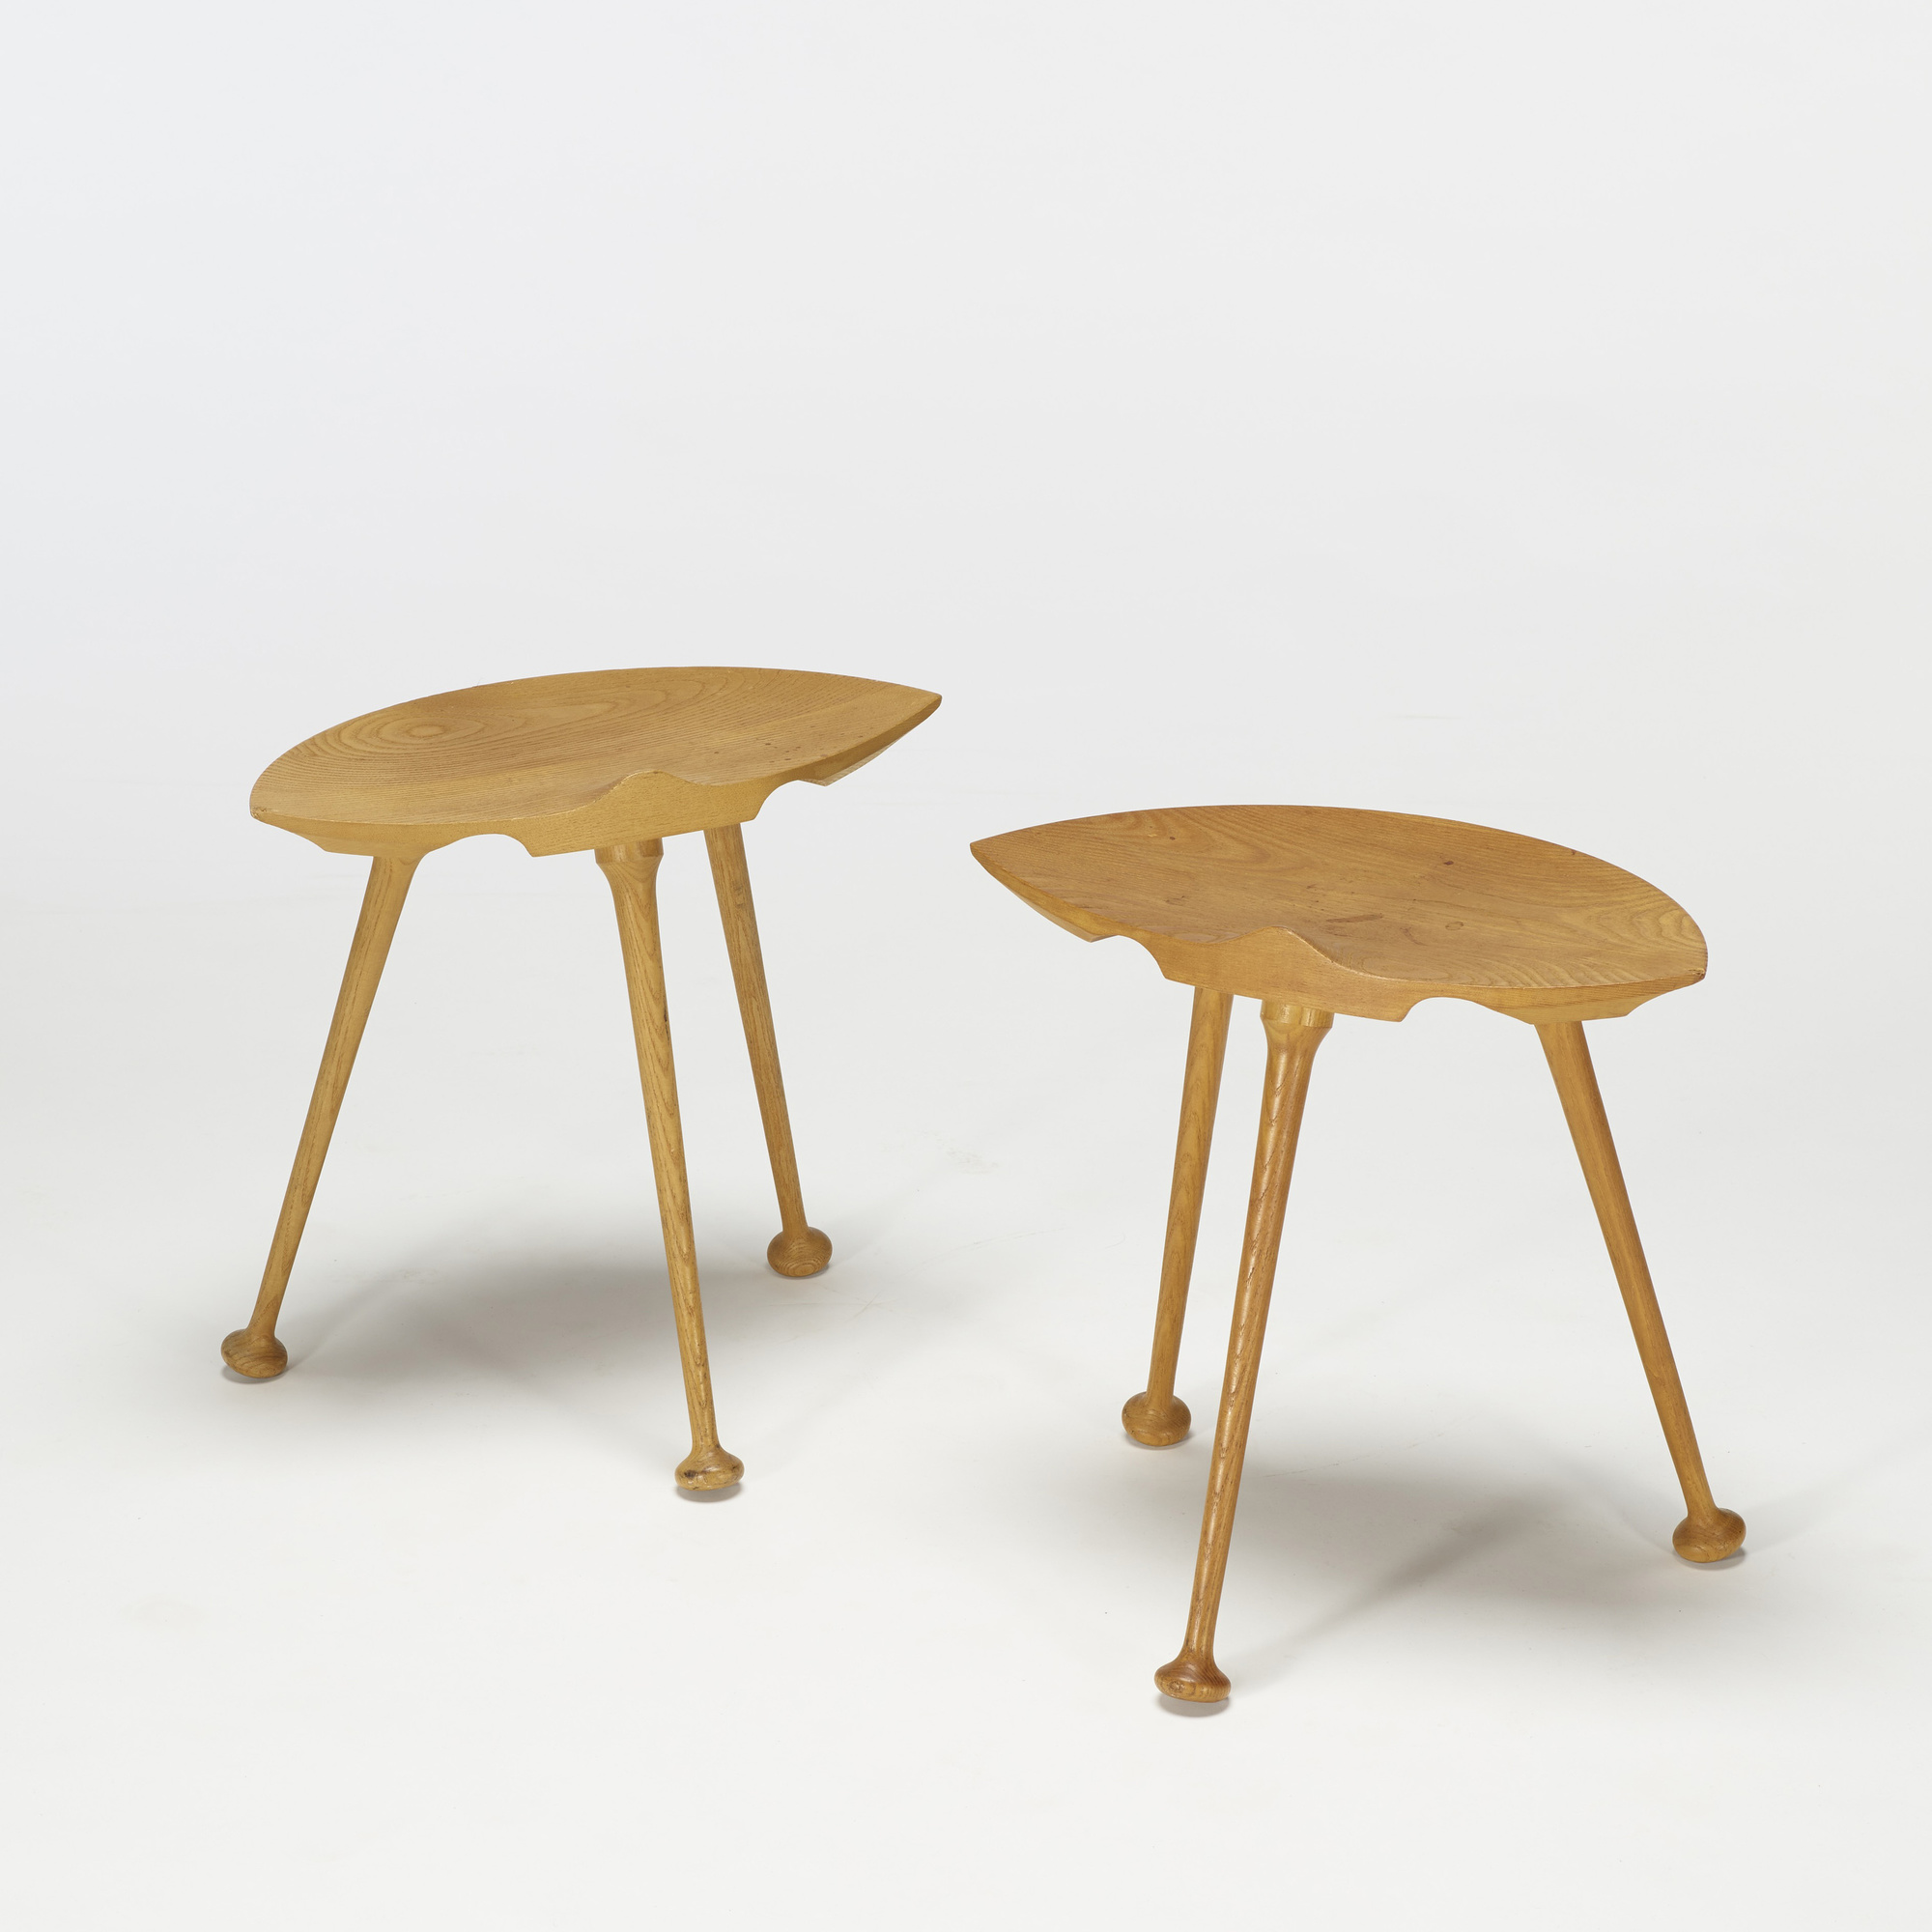 127: American Craft / stools, pair (2 of 2)